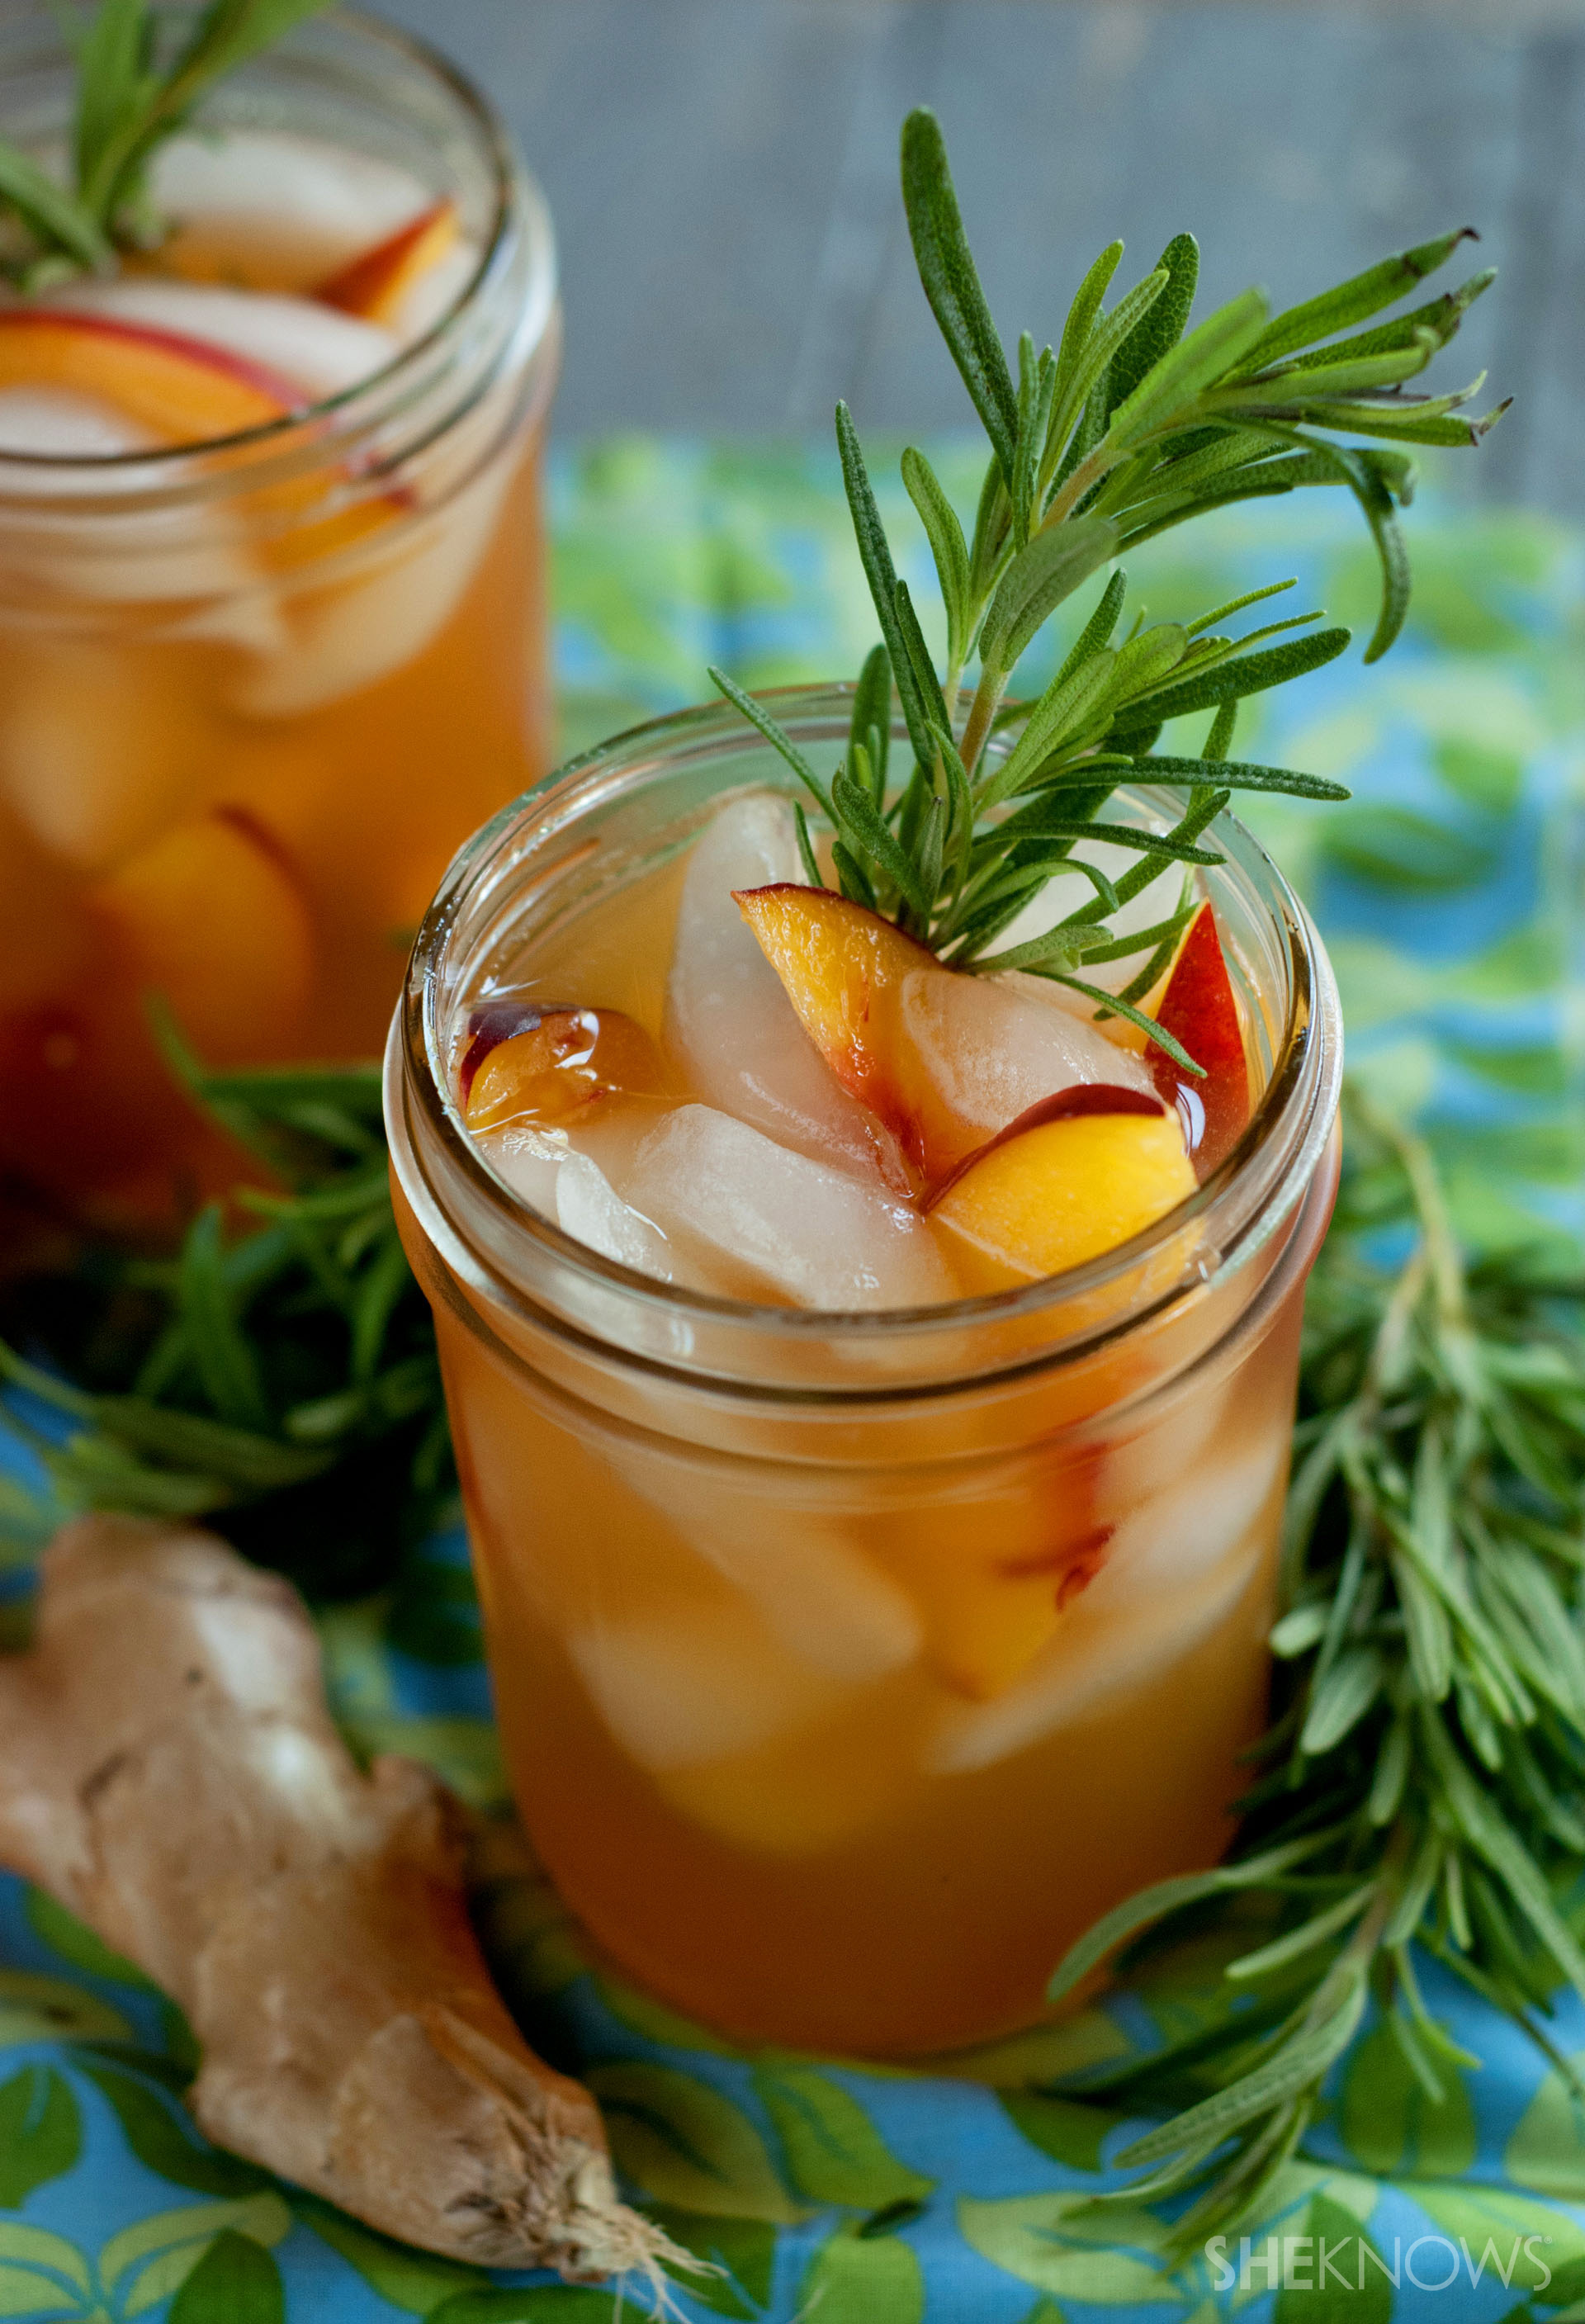 Serve up some sweet and spicy peach green tea for a beverage that's ...